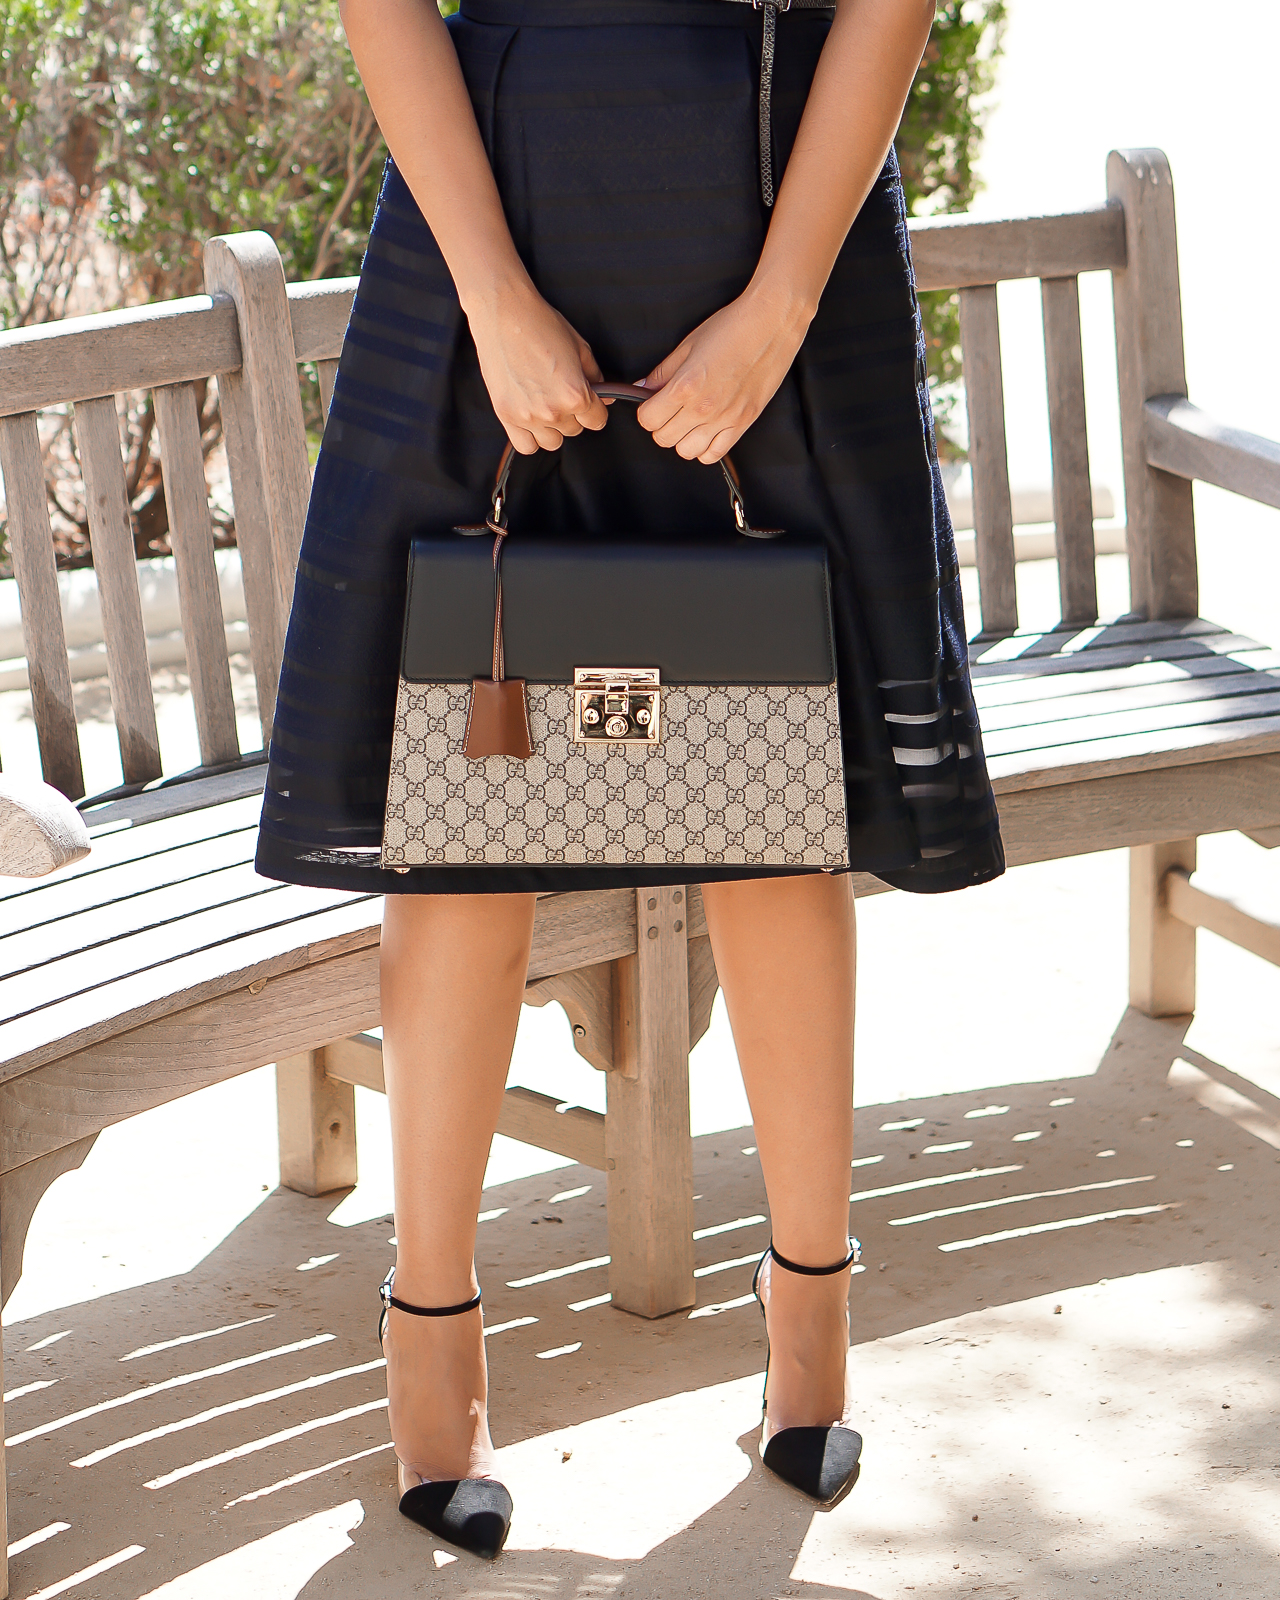 Fashion, Gucci, My Experience with Gucci, Padlock GG Supreme Top Handle bag, Strapless navy Blue H&M Midi Dress, Zara Black cap toe Heels, Designer bag, Luxury Bag, Gucci Bag,